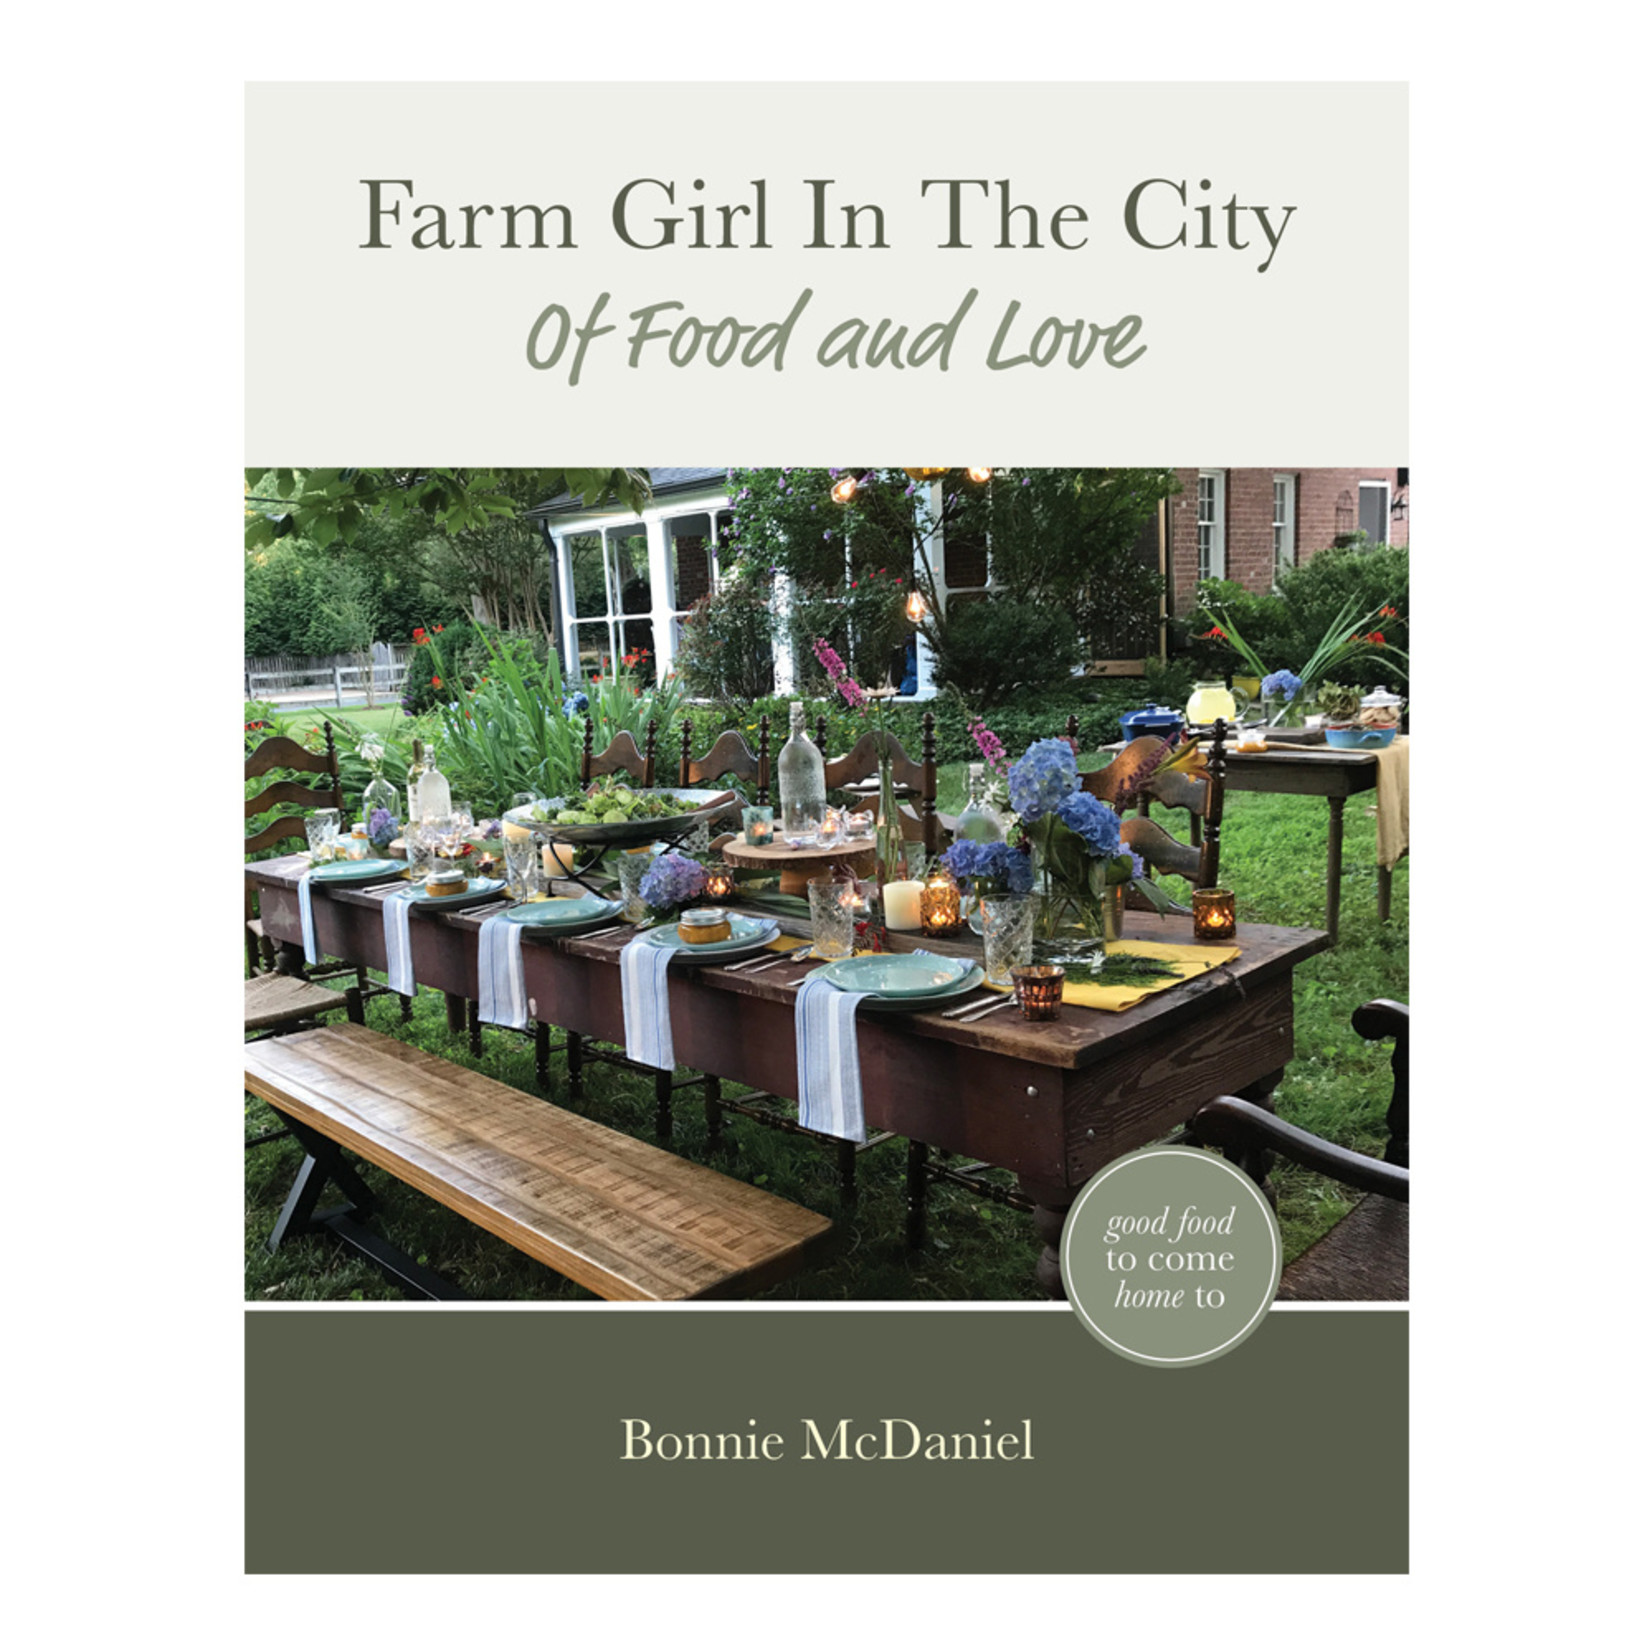 Farm Girl in the City: Of Food and Love